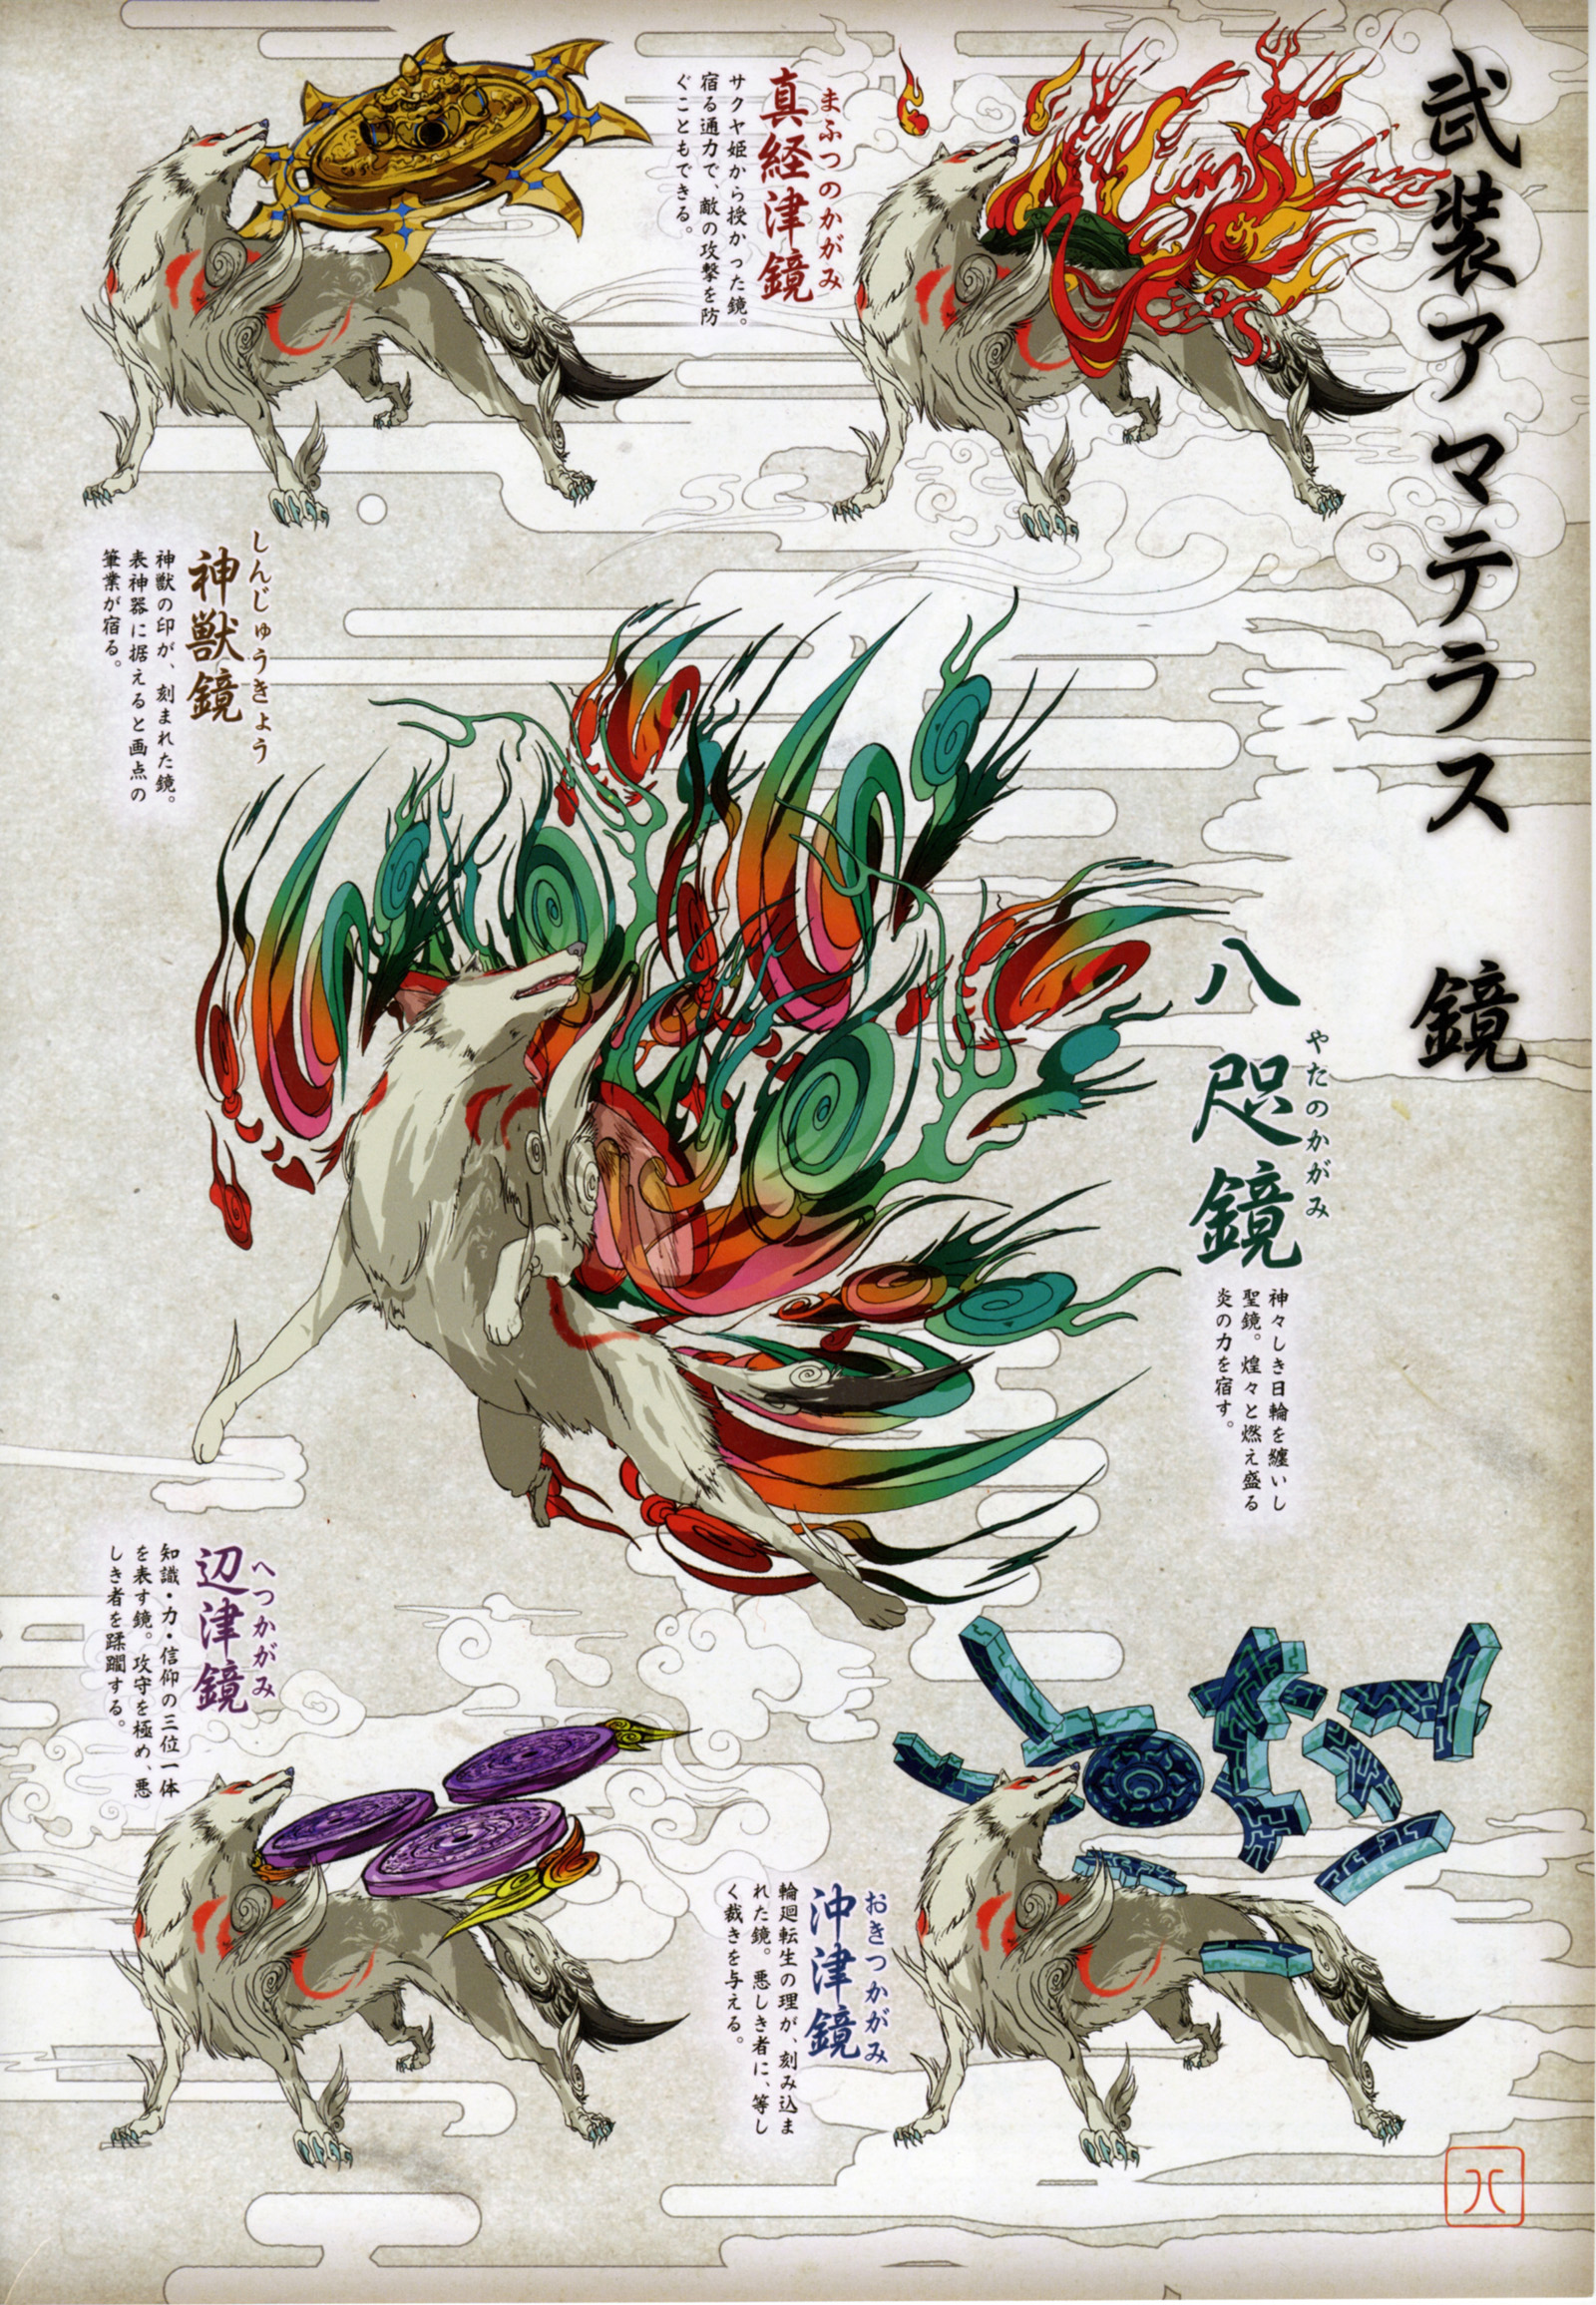 Reflector Okami Wiki Fandom Powered By Wikia